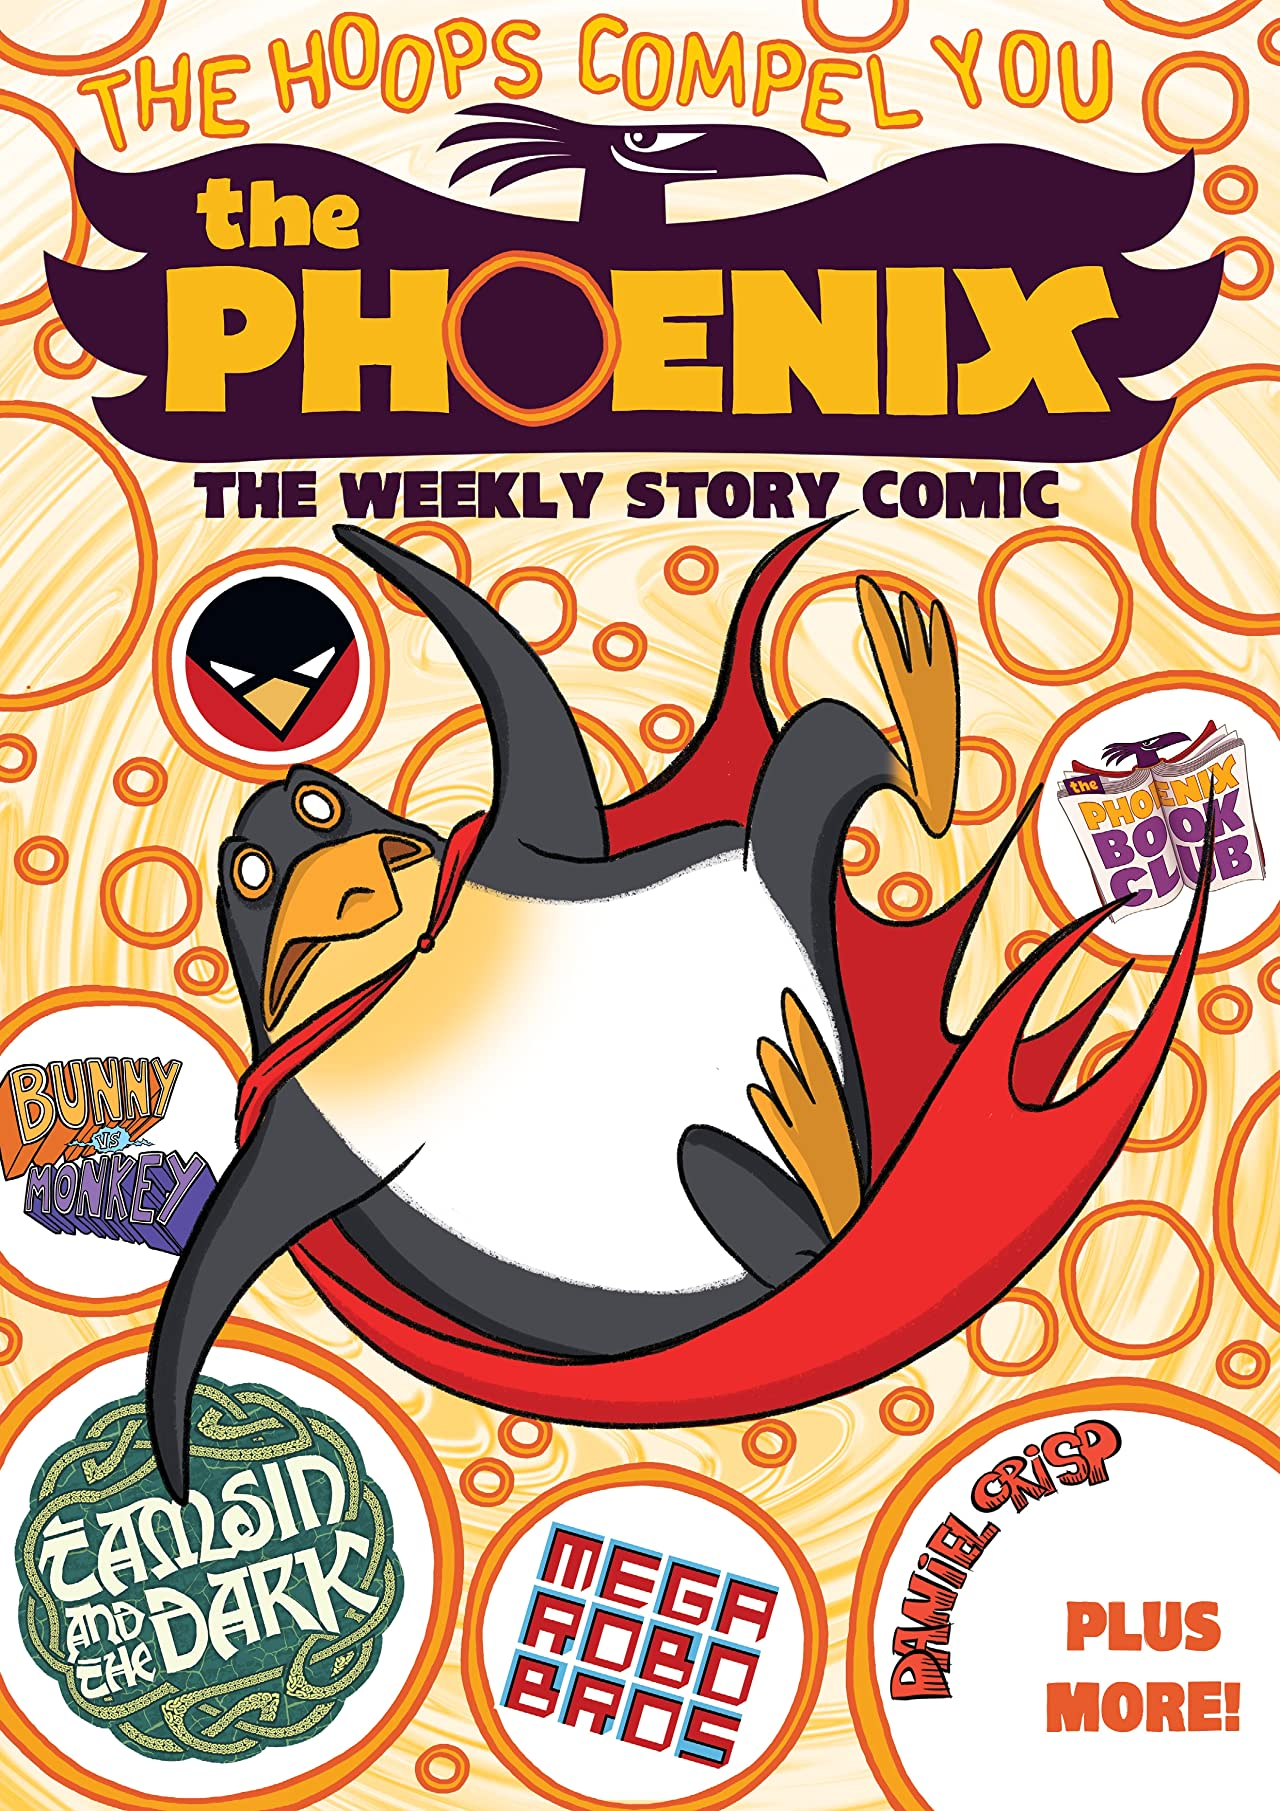 The Phoenix #226: The Weekly Story Comic